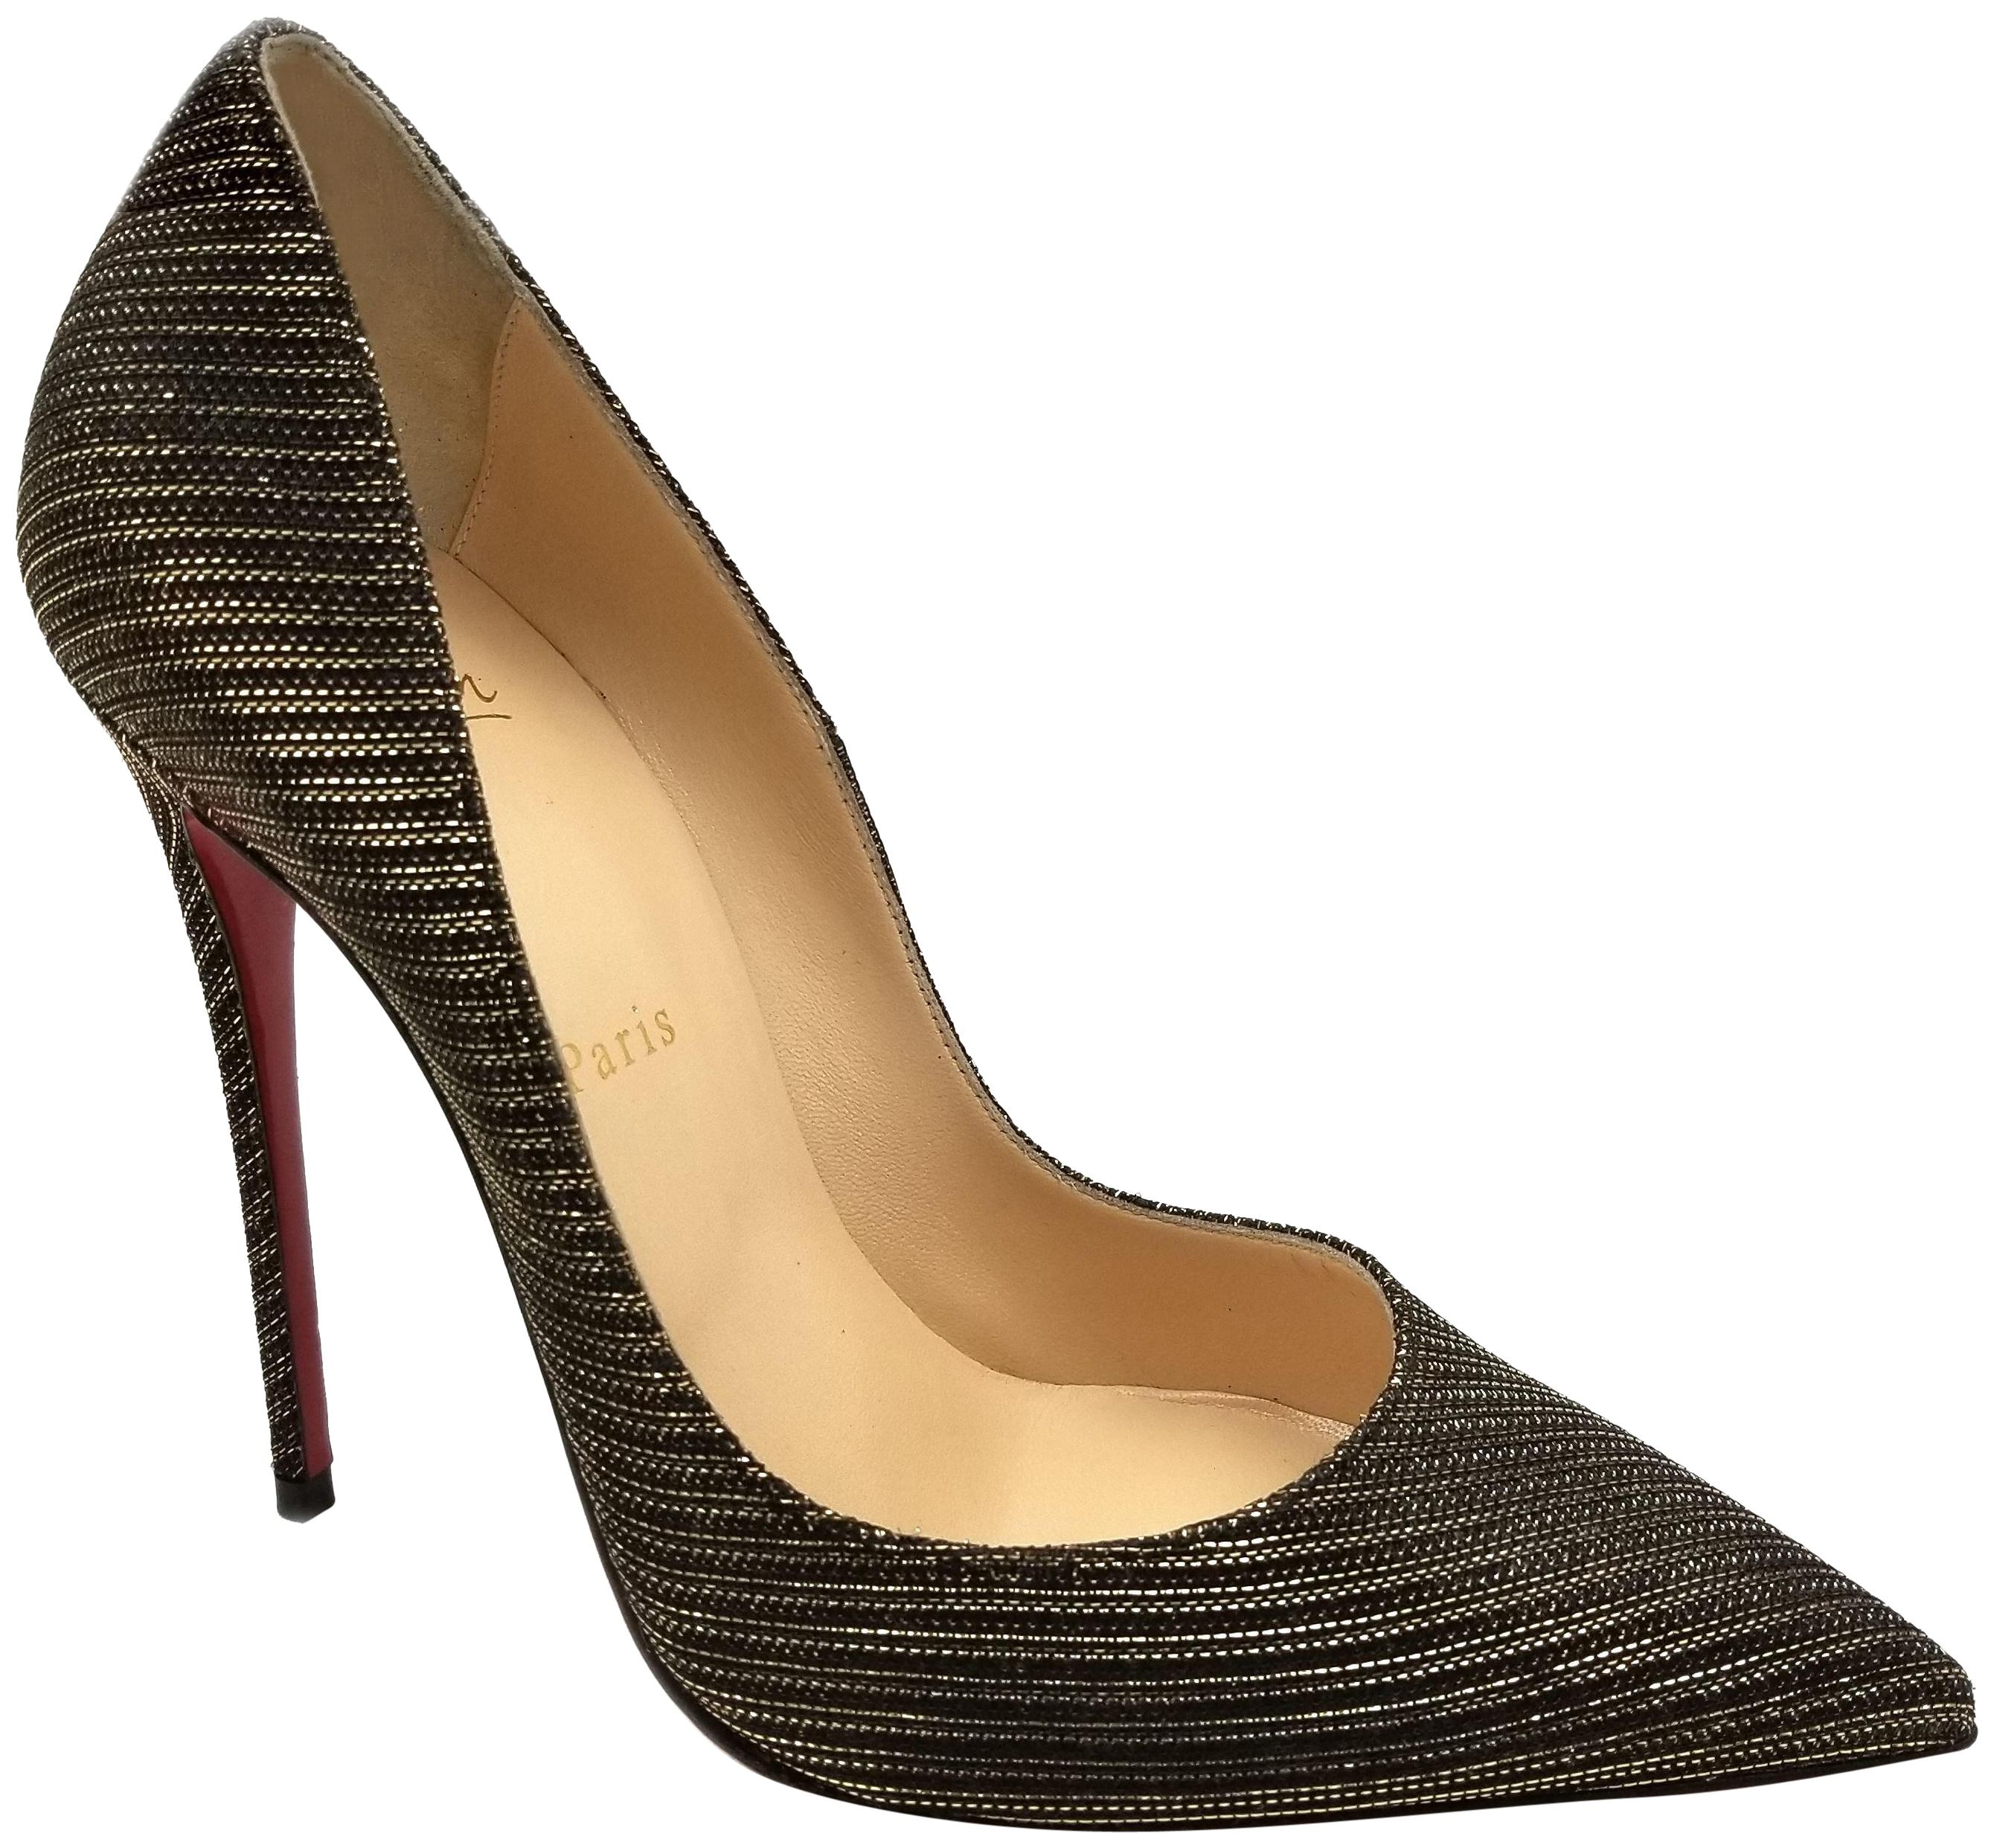 1de3c86ab25 Christian Louboutin Black/Gold So Kate Glitter Chain 120mm Red Red ...